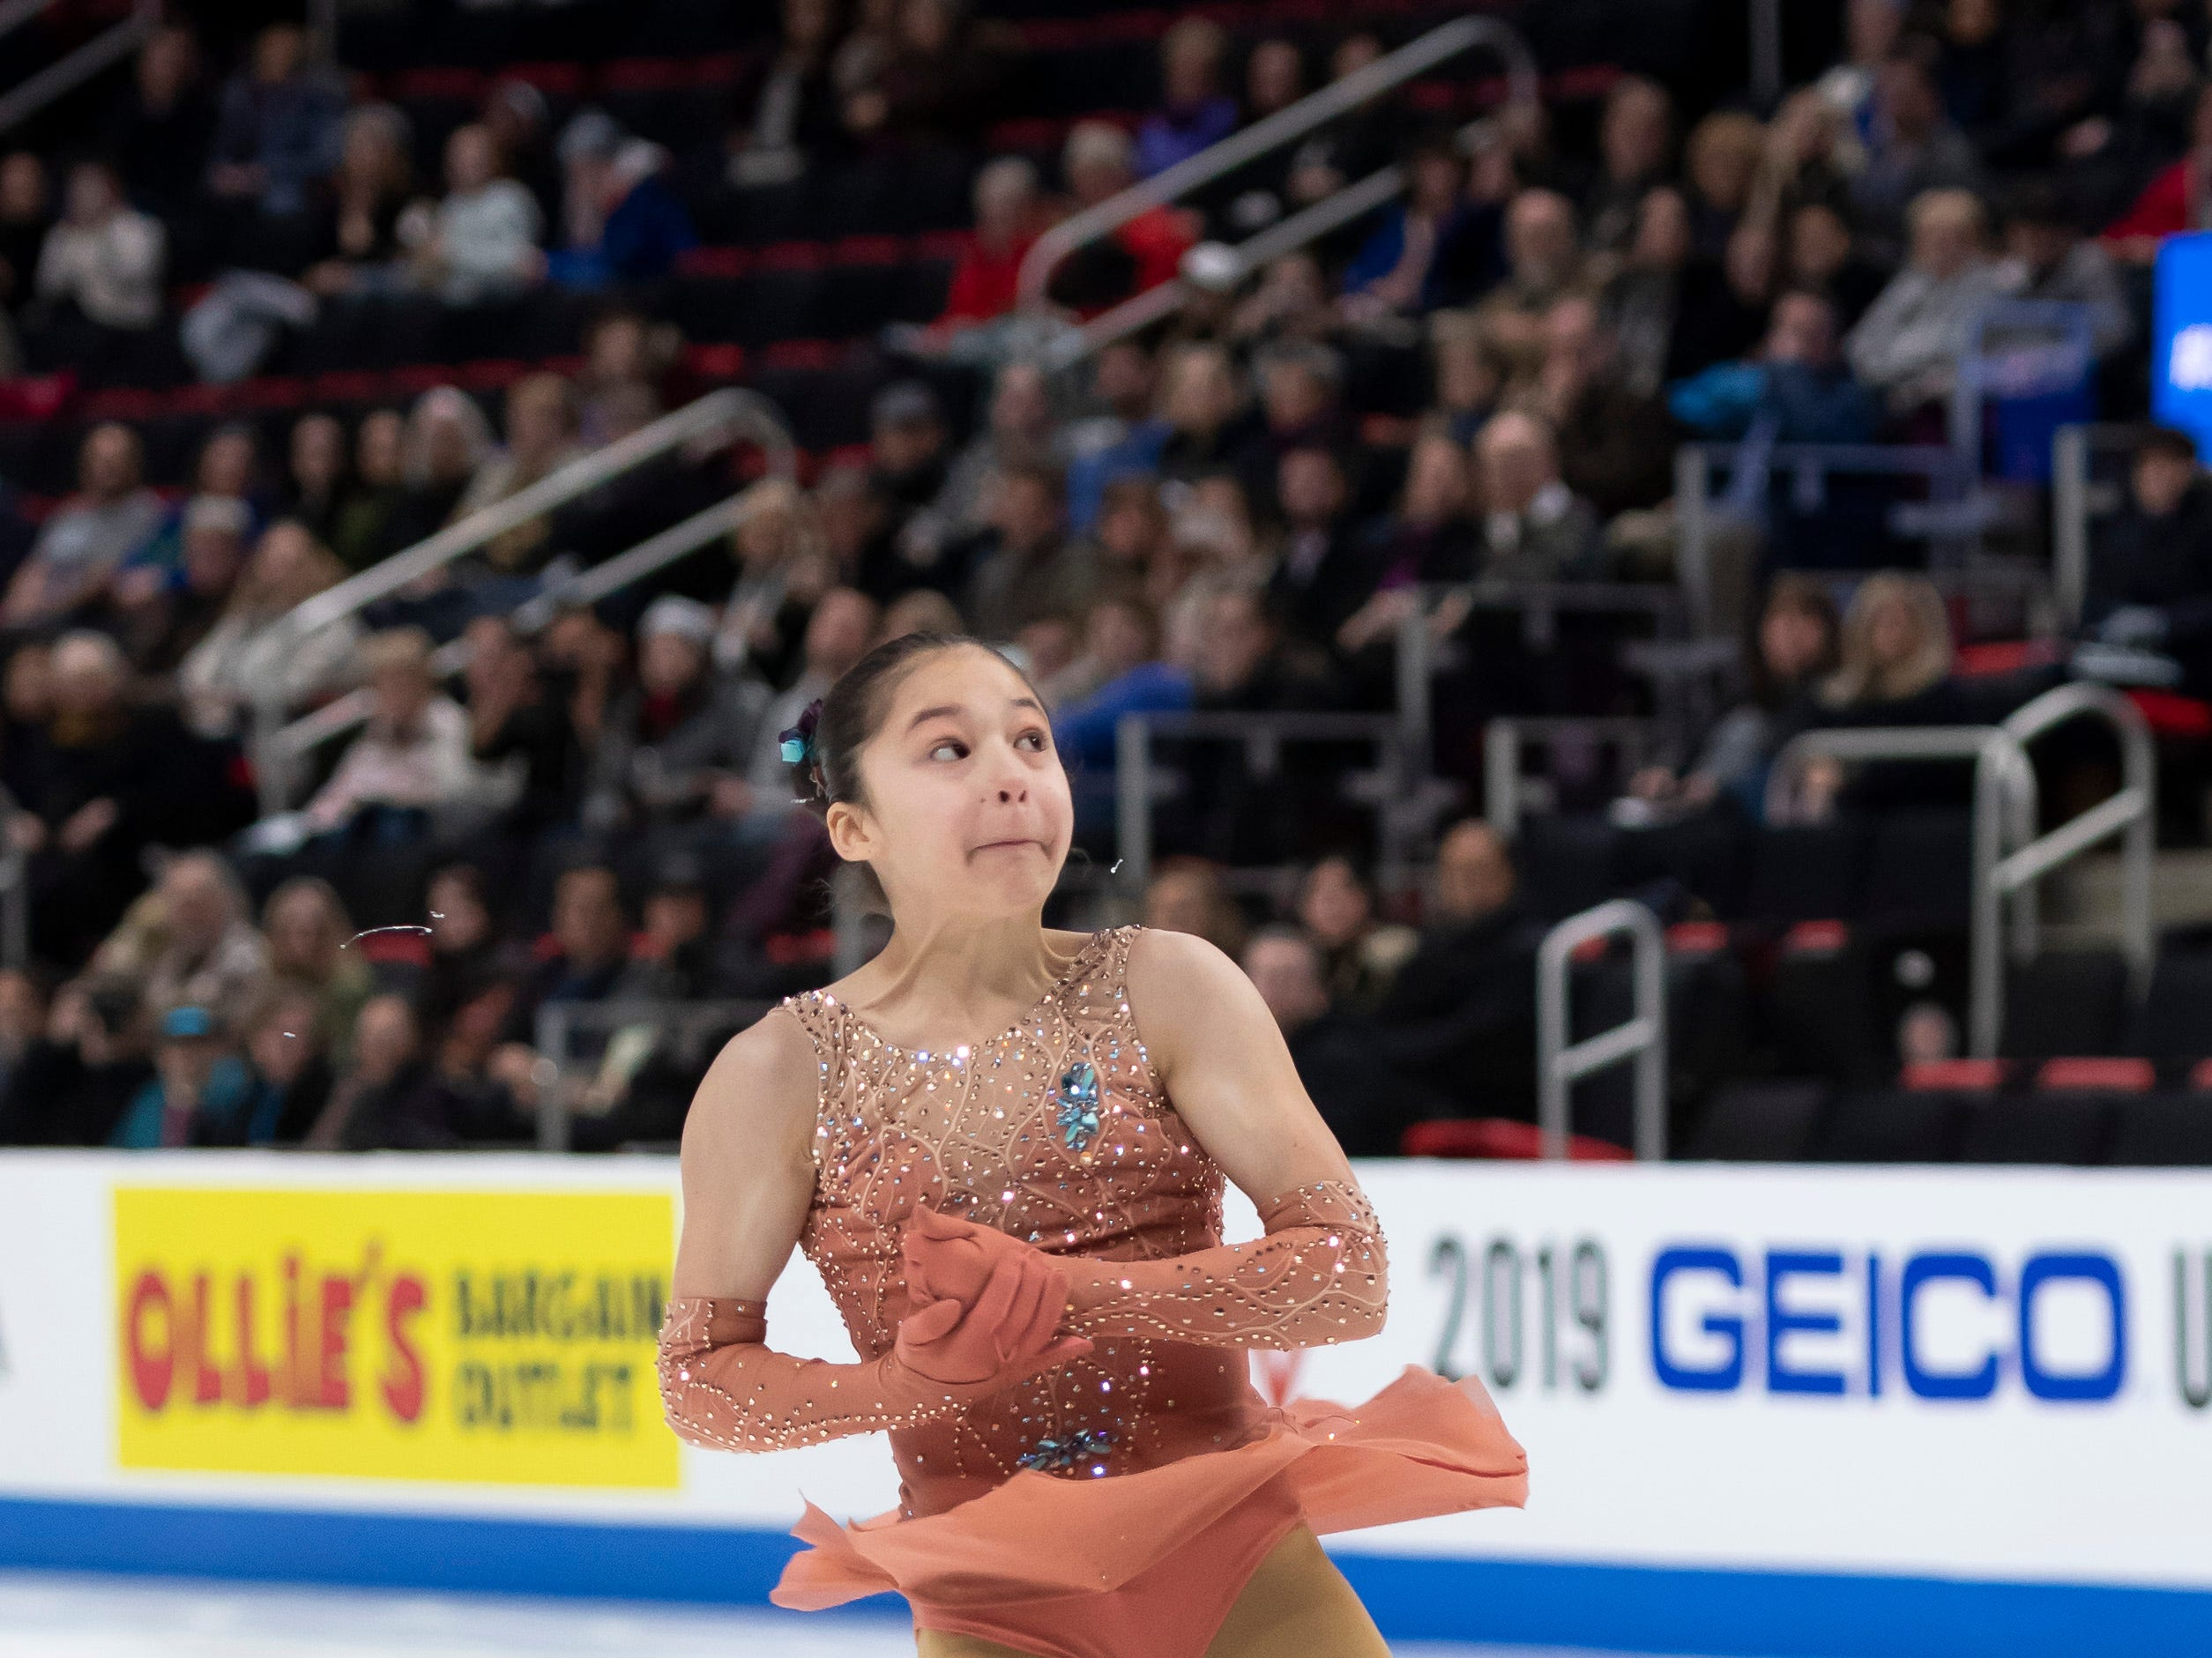 Thirteen-year-old Alysa Liu completes a triple-axle while competing in the ladies short program. Liu become the youngest American in history to make the jump.